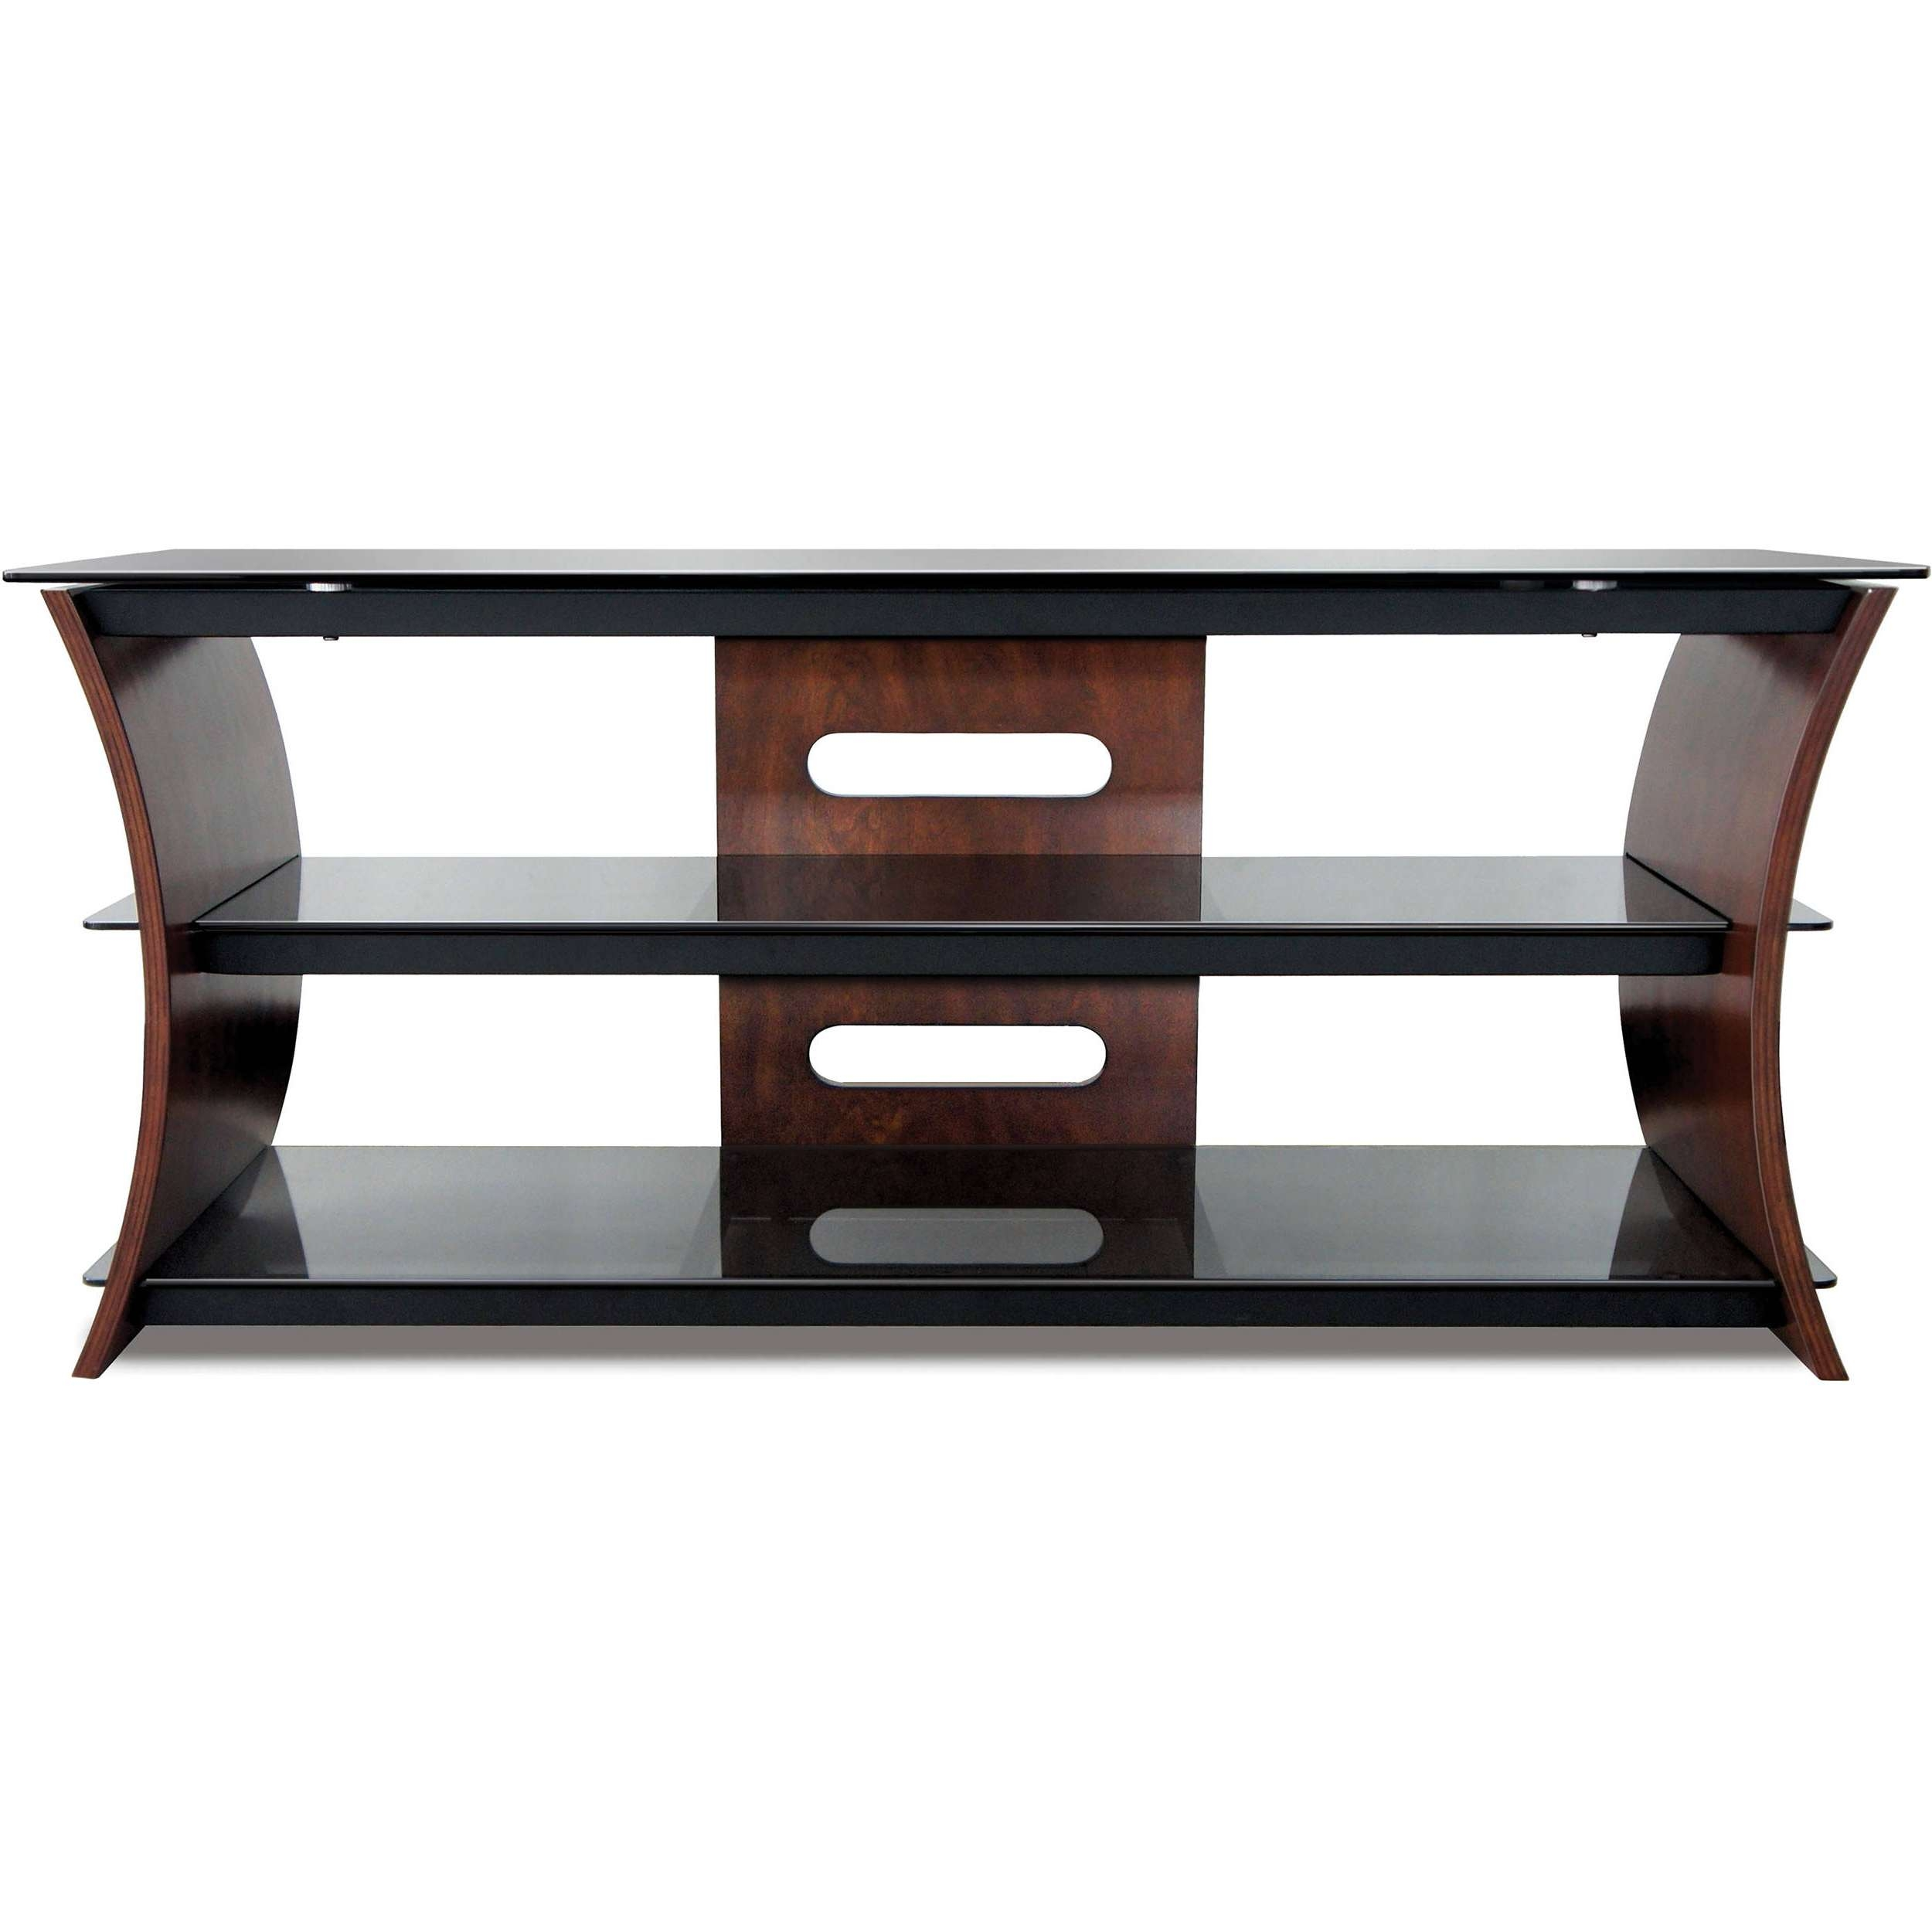 Bell'o Cw356 Curved Wood Tv Stand Cw356 B&h Photo Video Pertaining To Wooden Tv Stands (View 1 of 15)